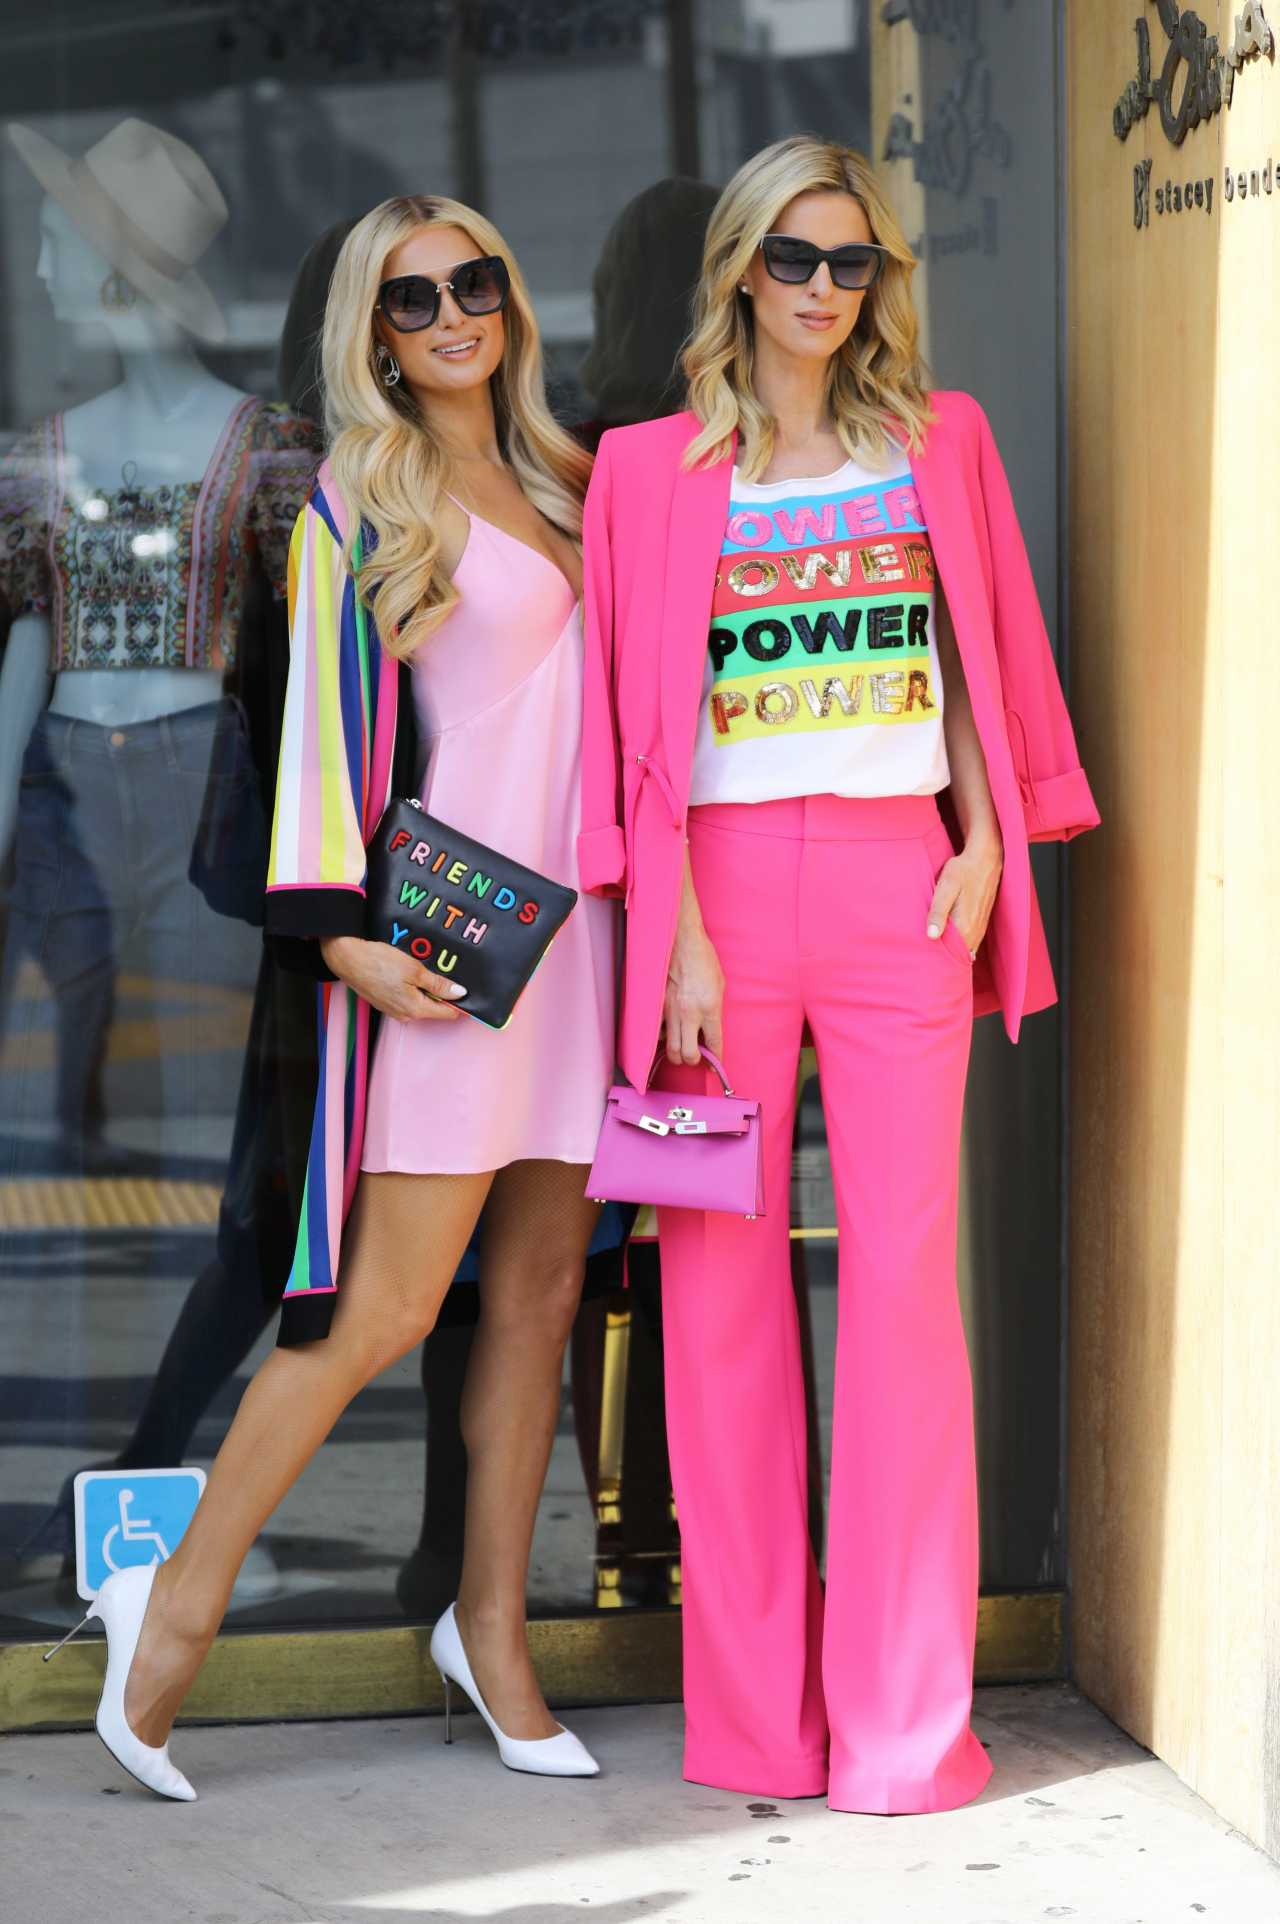 Nicky Hilton and Paris Hilton - Posing in Beverly Hills